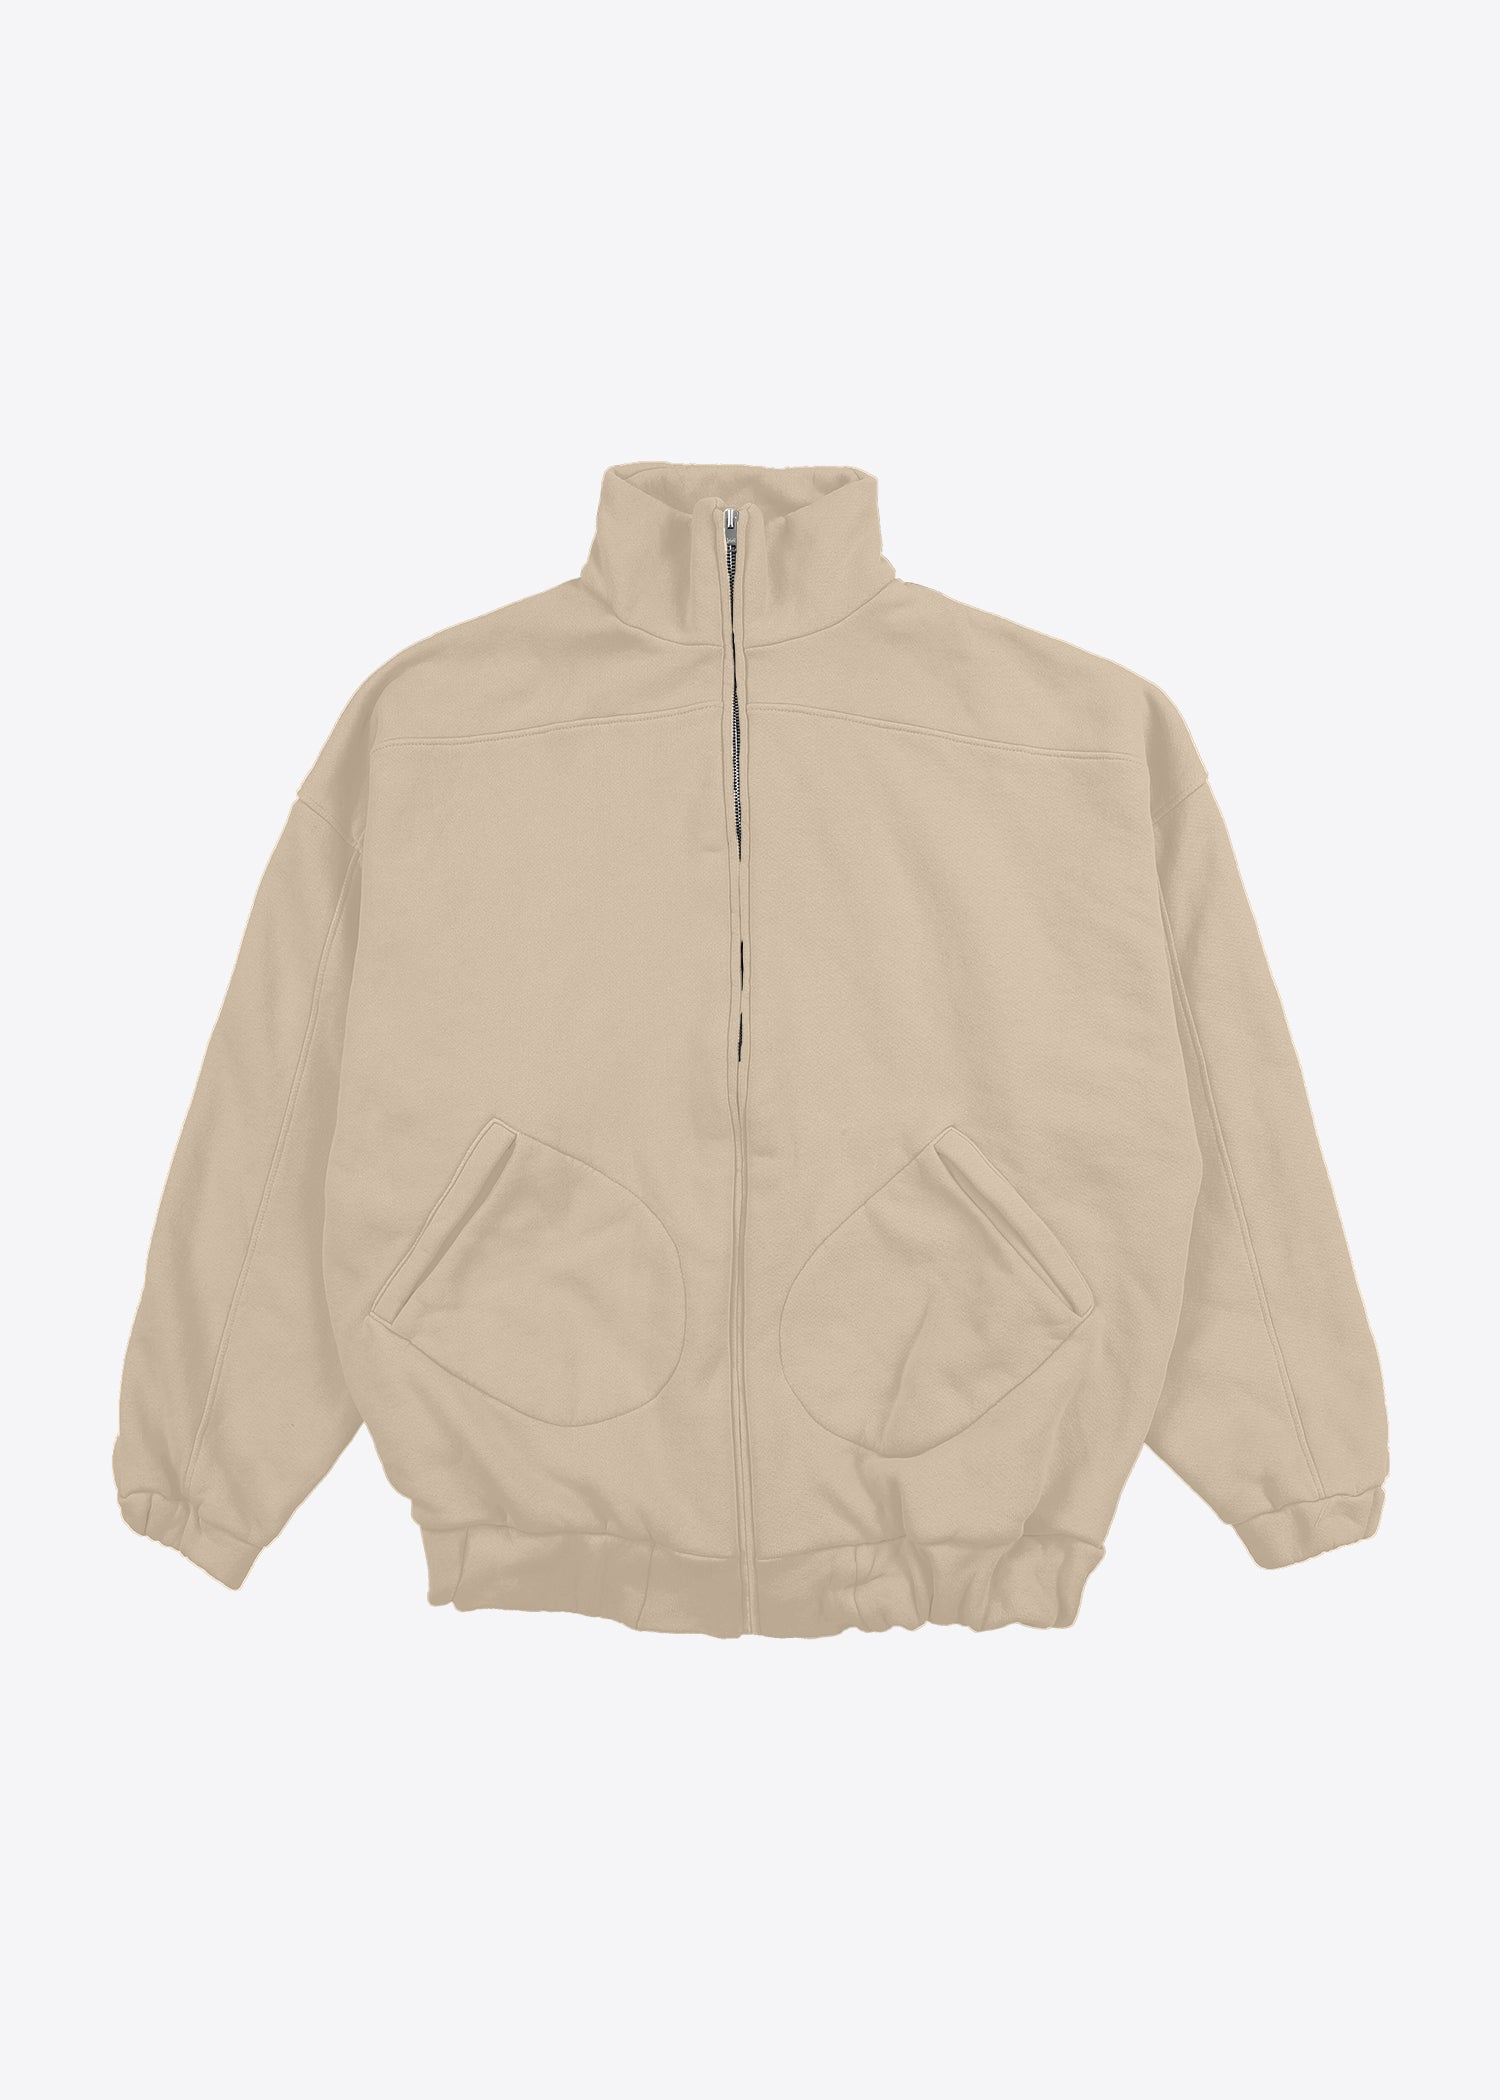 Layer Jacket Cream image-1